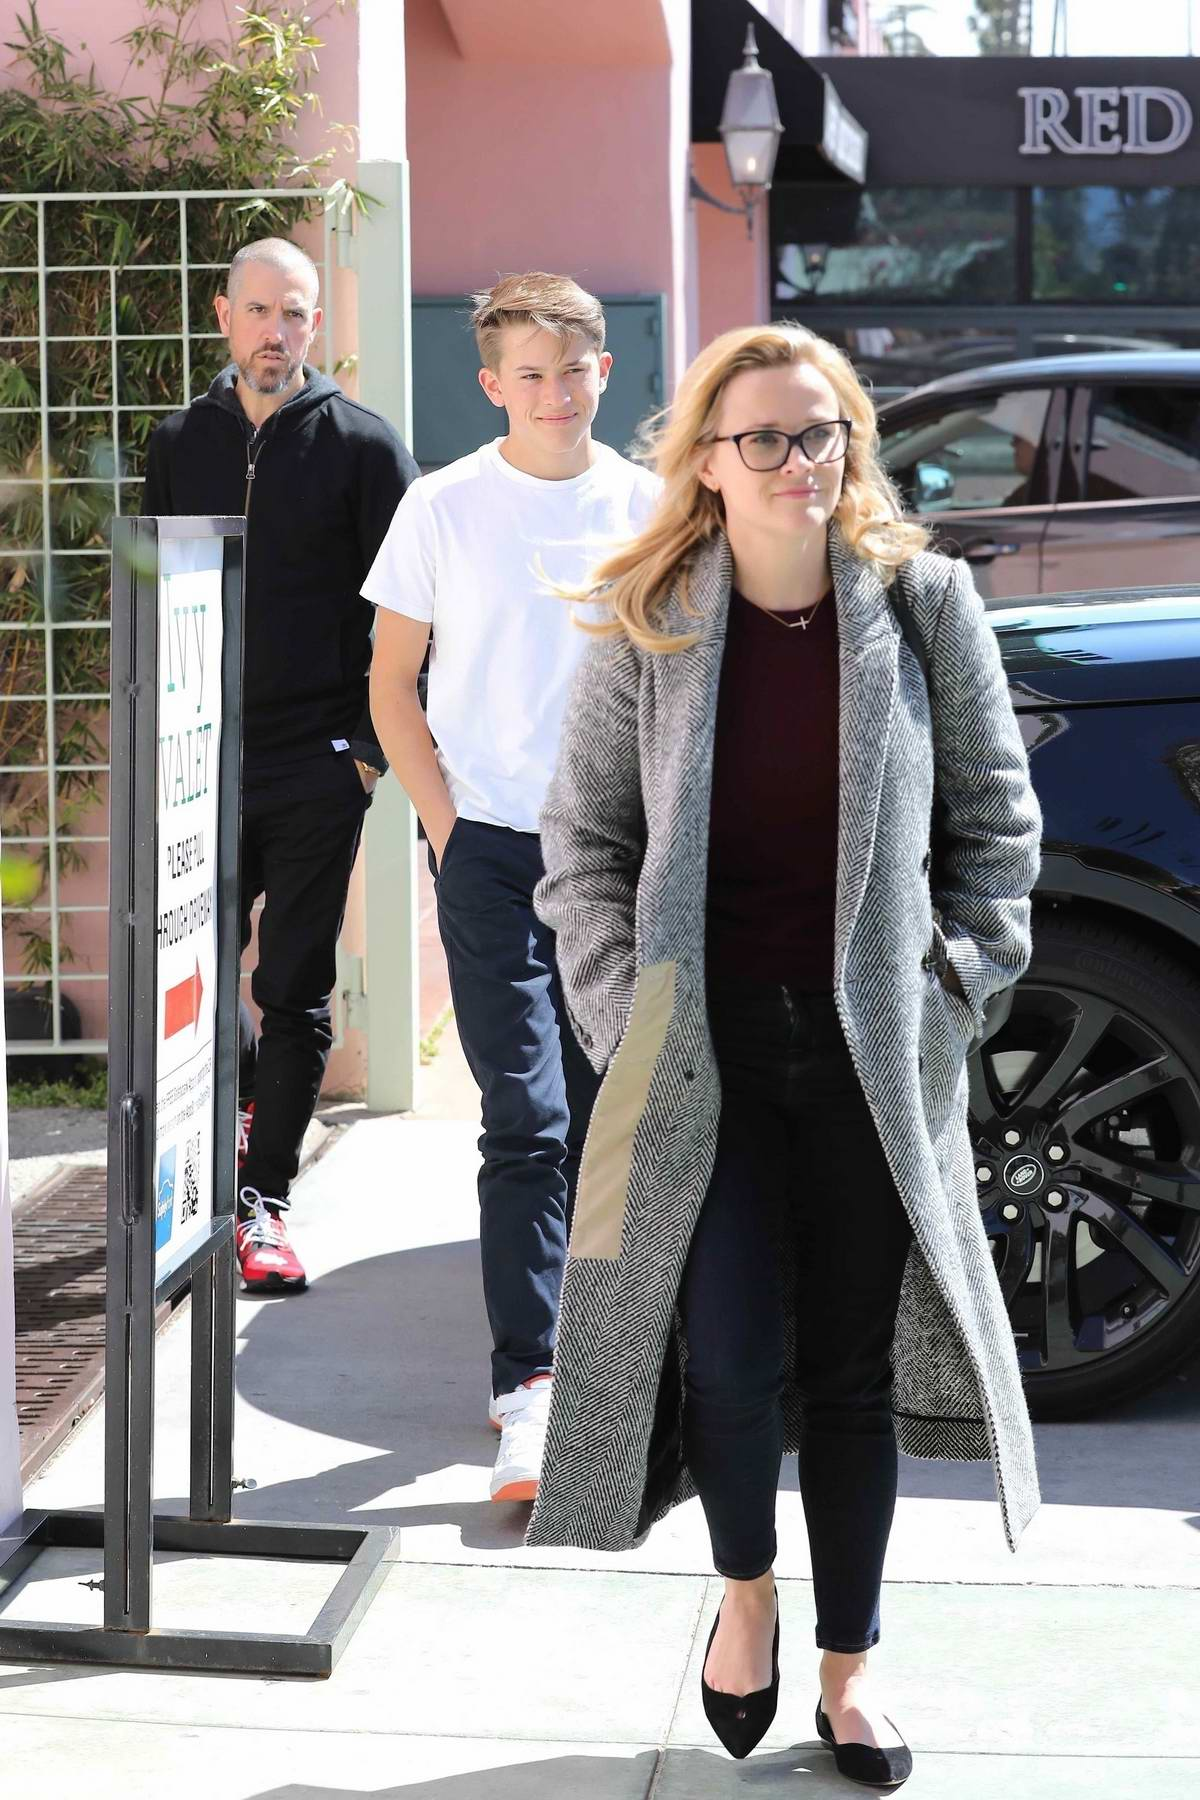 Reese Witherspoon makes a stop at her movie set before heading off to lunch with son Deacon Phillippe and husband Jim Toth in Los Angeles